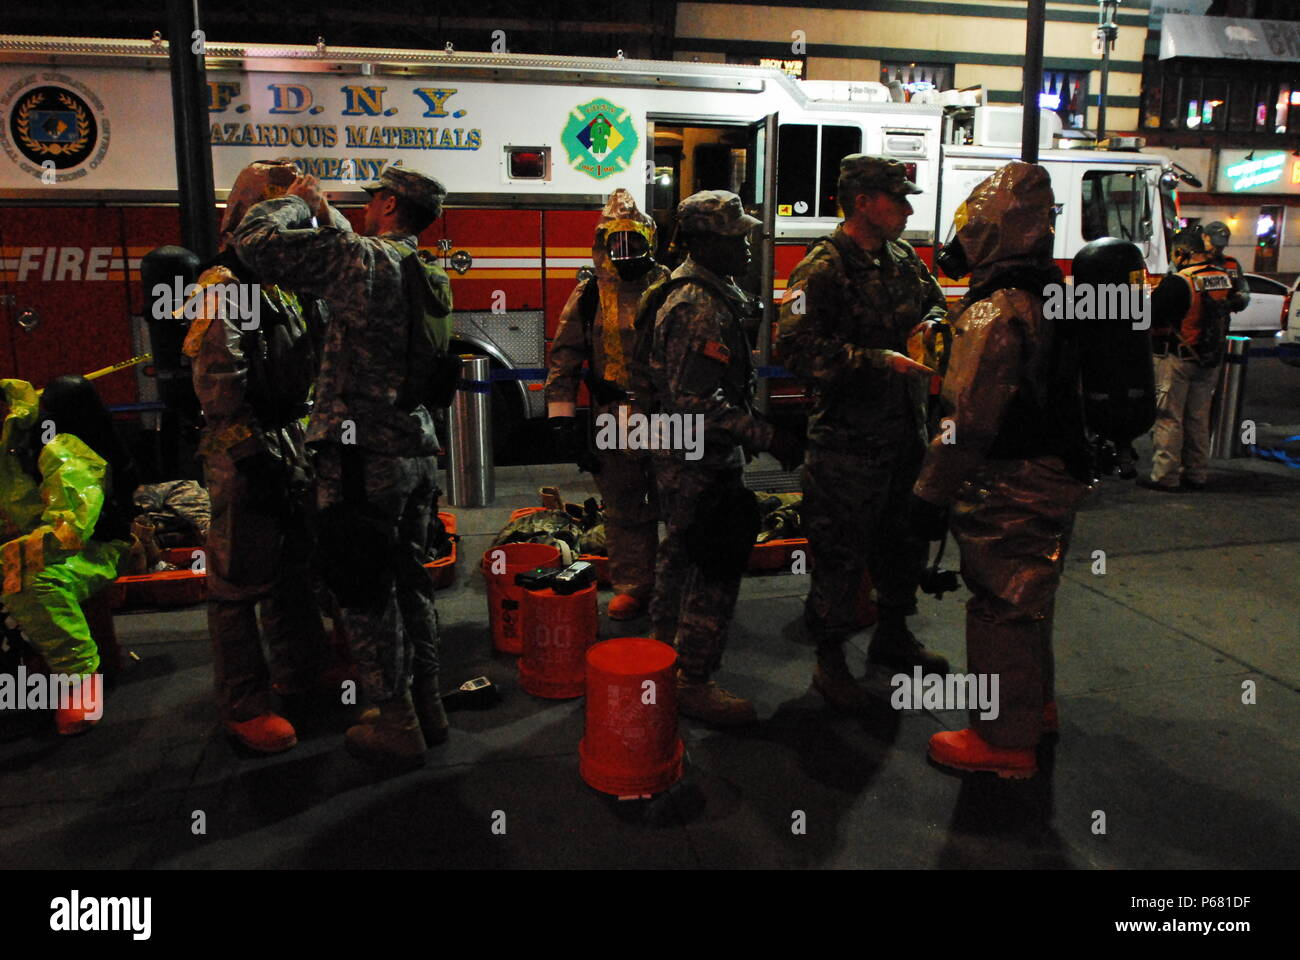 """Members of the 59th Chemical, Biological, Radiological, Nuclear (CBRN) Company suit up for their Reconnaissance Sustainment Training with the New York Fire Department at Pennsylvania Station in New York City on May 19. As part of the training, the unit collaborated with the FDNY in response to multiple """"coordinated chemical and radiological attacks"""" throughout the city including the subway system. - Stock Image"""